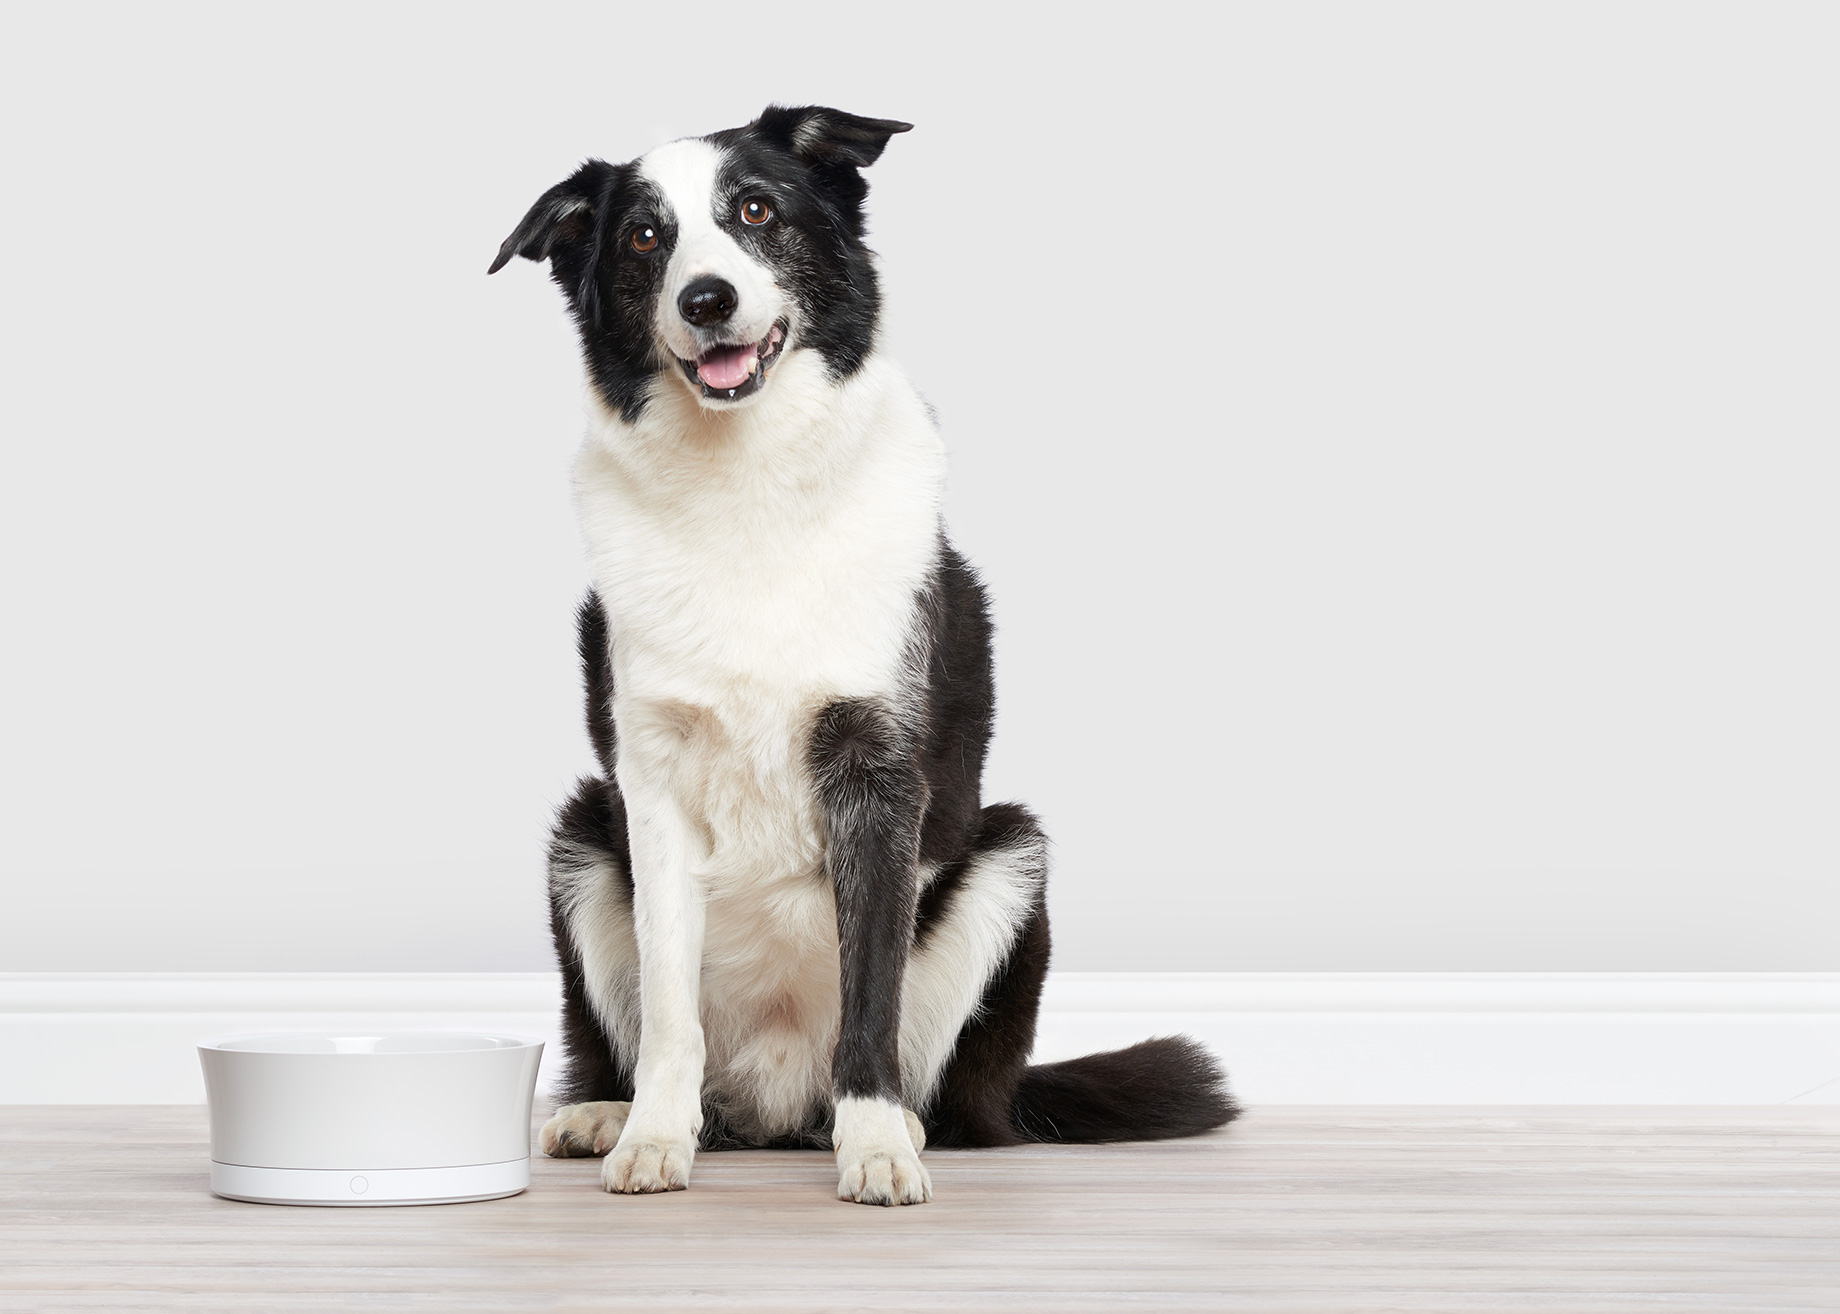 ObeDog smart dog food bowl. A commercial animal project by SF based photographer, Peter Samuels.